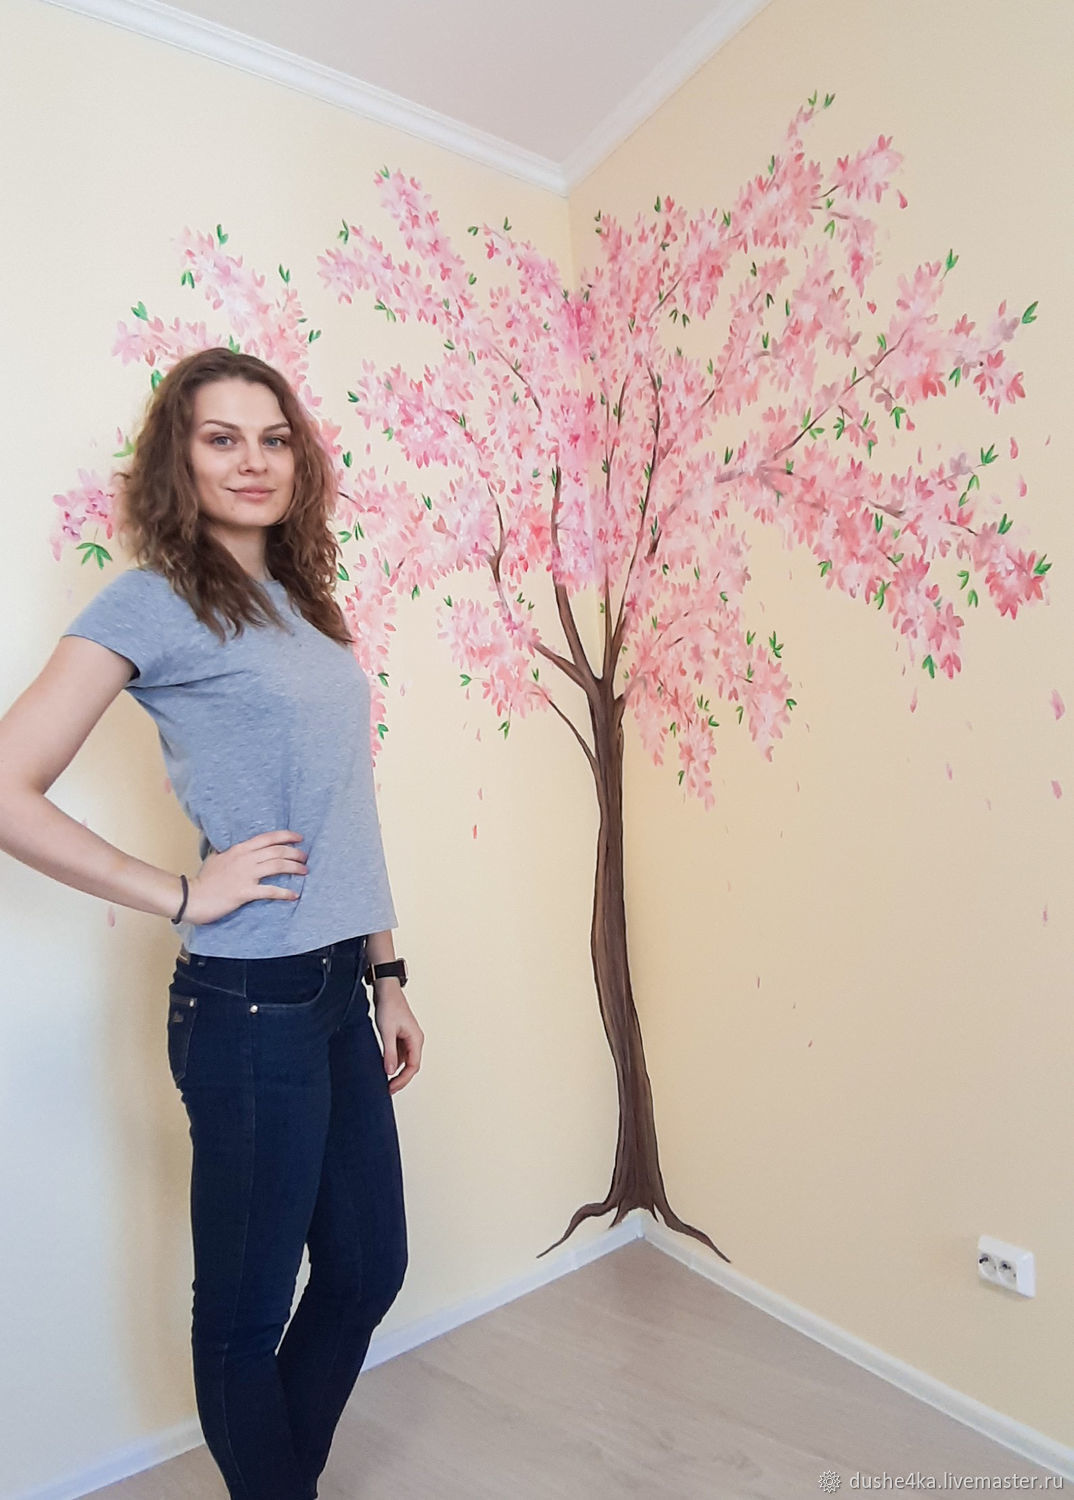 Wall Painting In The Room Flowering Tree Shop Online On Livemaster With Shipping Iiu23com St Petersburg